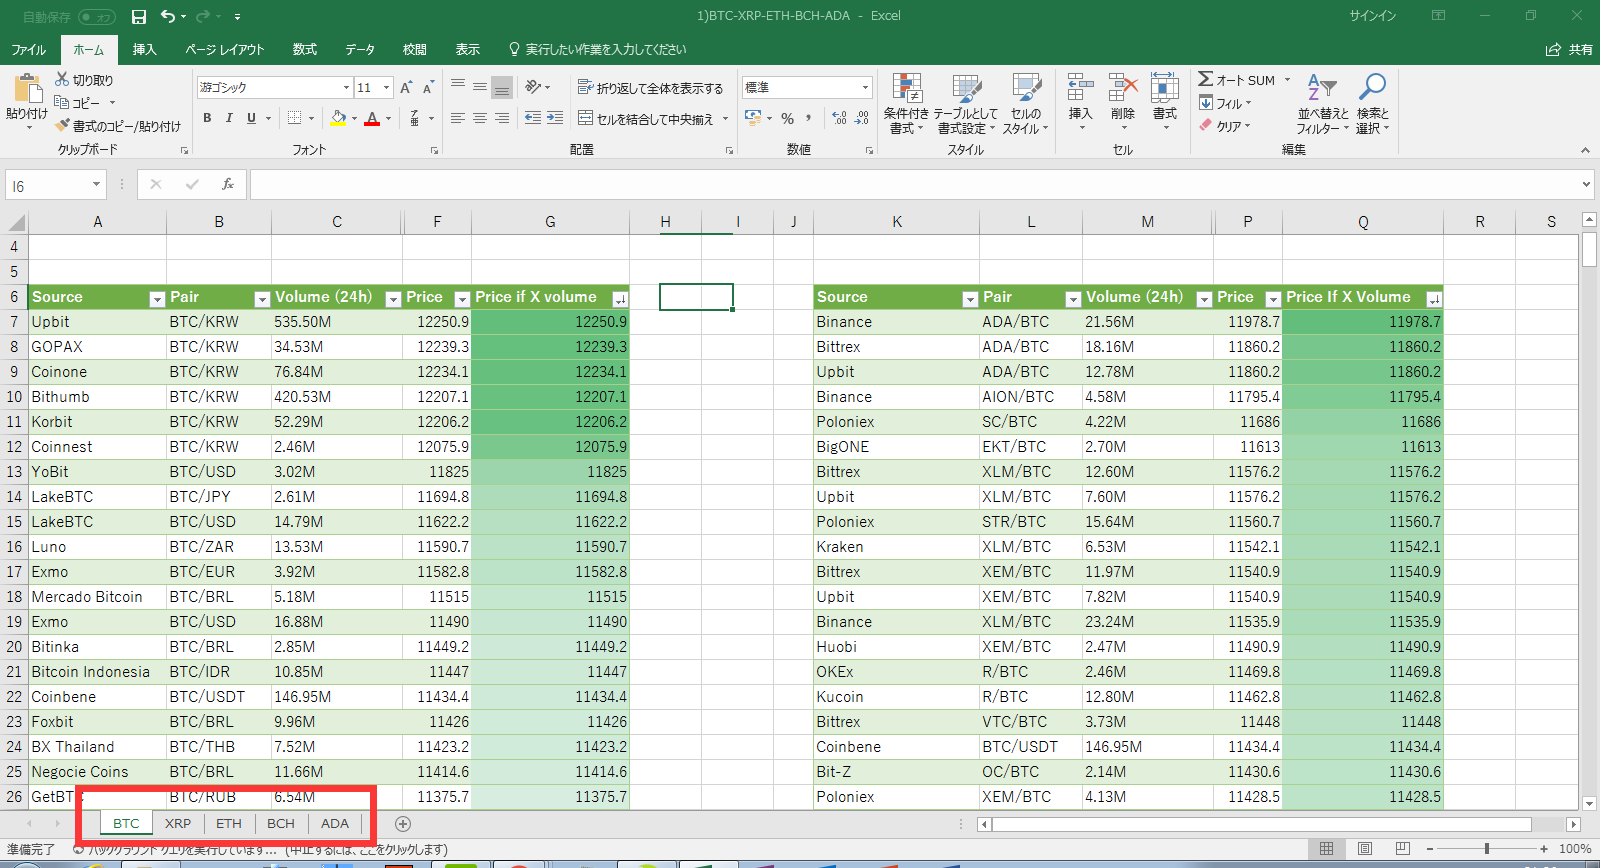 Matchmaking excel